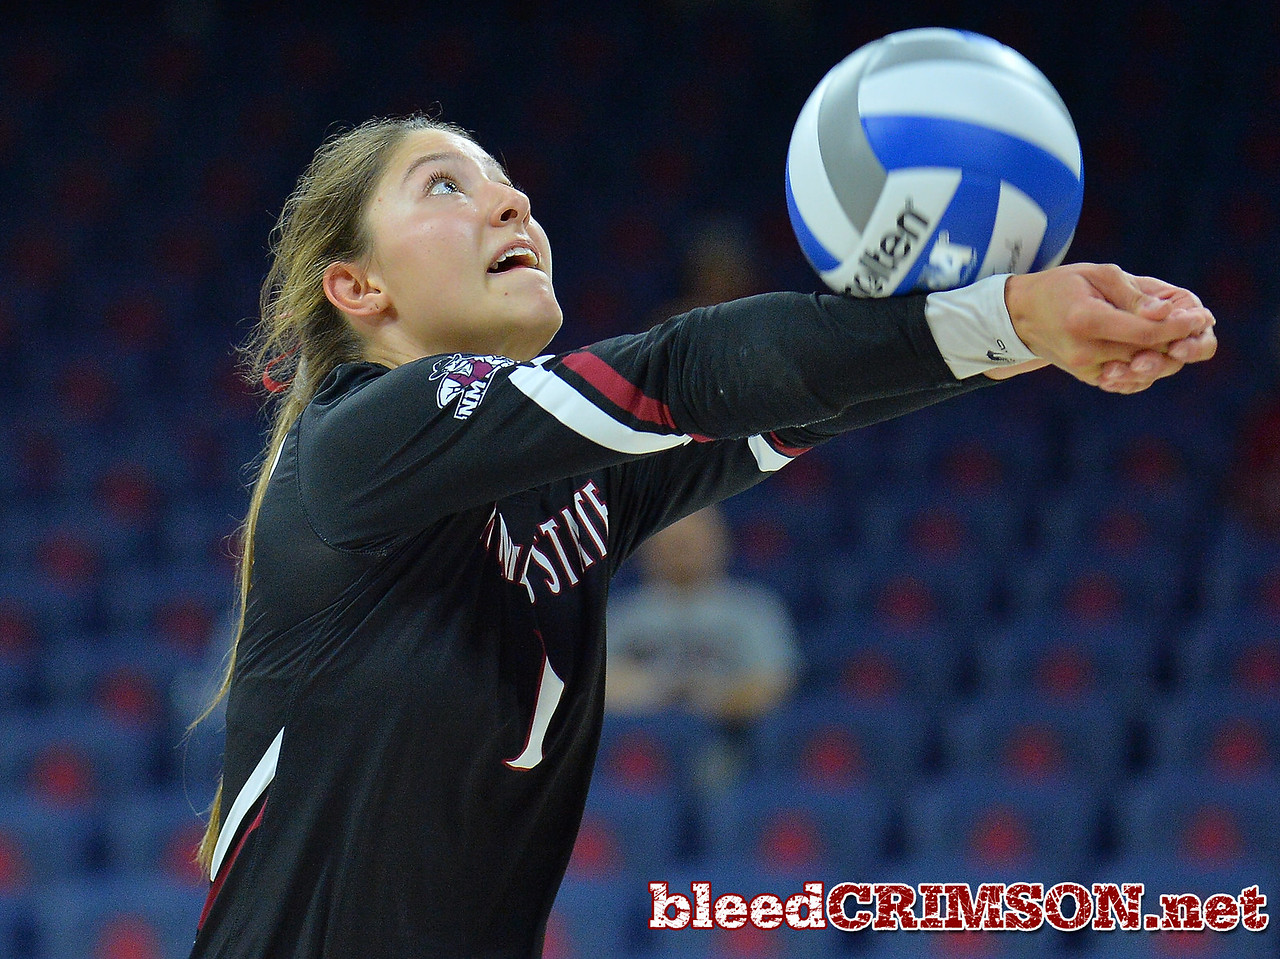 TUCSON, AZ - SEPTEMBER 16:  Briana Ainsworth #1 of the New Mexico State Aggies bump sets a ball in a match between the New Mexico State Aggies and the Illinois State Redbirds at the McKale Center in Tucson, Arizona. The Redbirds won 3-0.  (Photo by Sam Wasson)